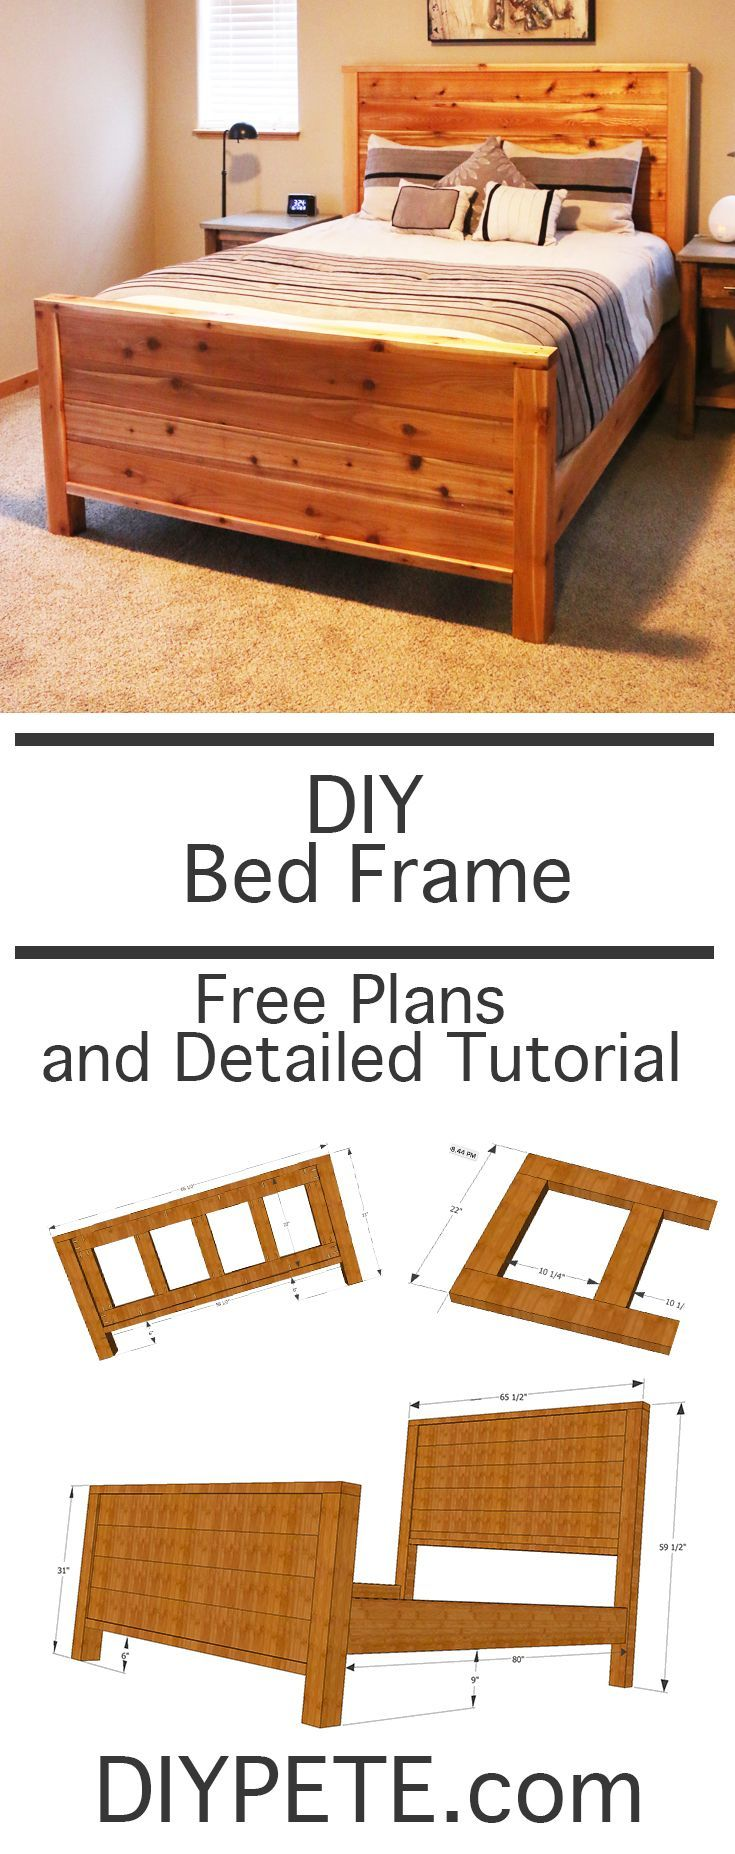 How to Make a Bed Frame – Free Bed Frame Plans   Pinterest   Wood ...